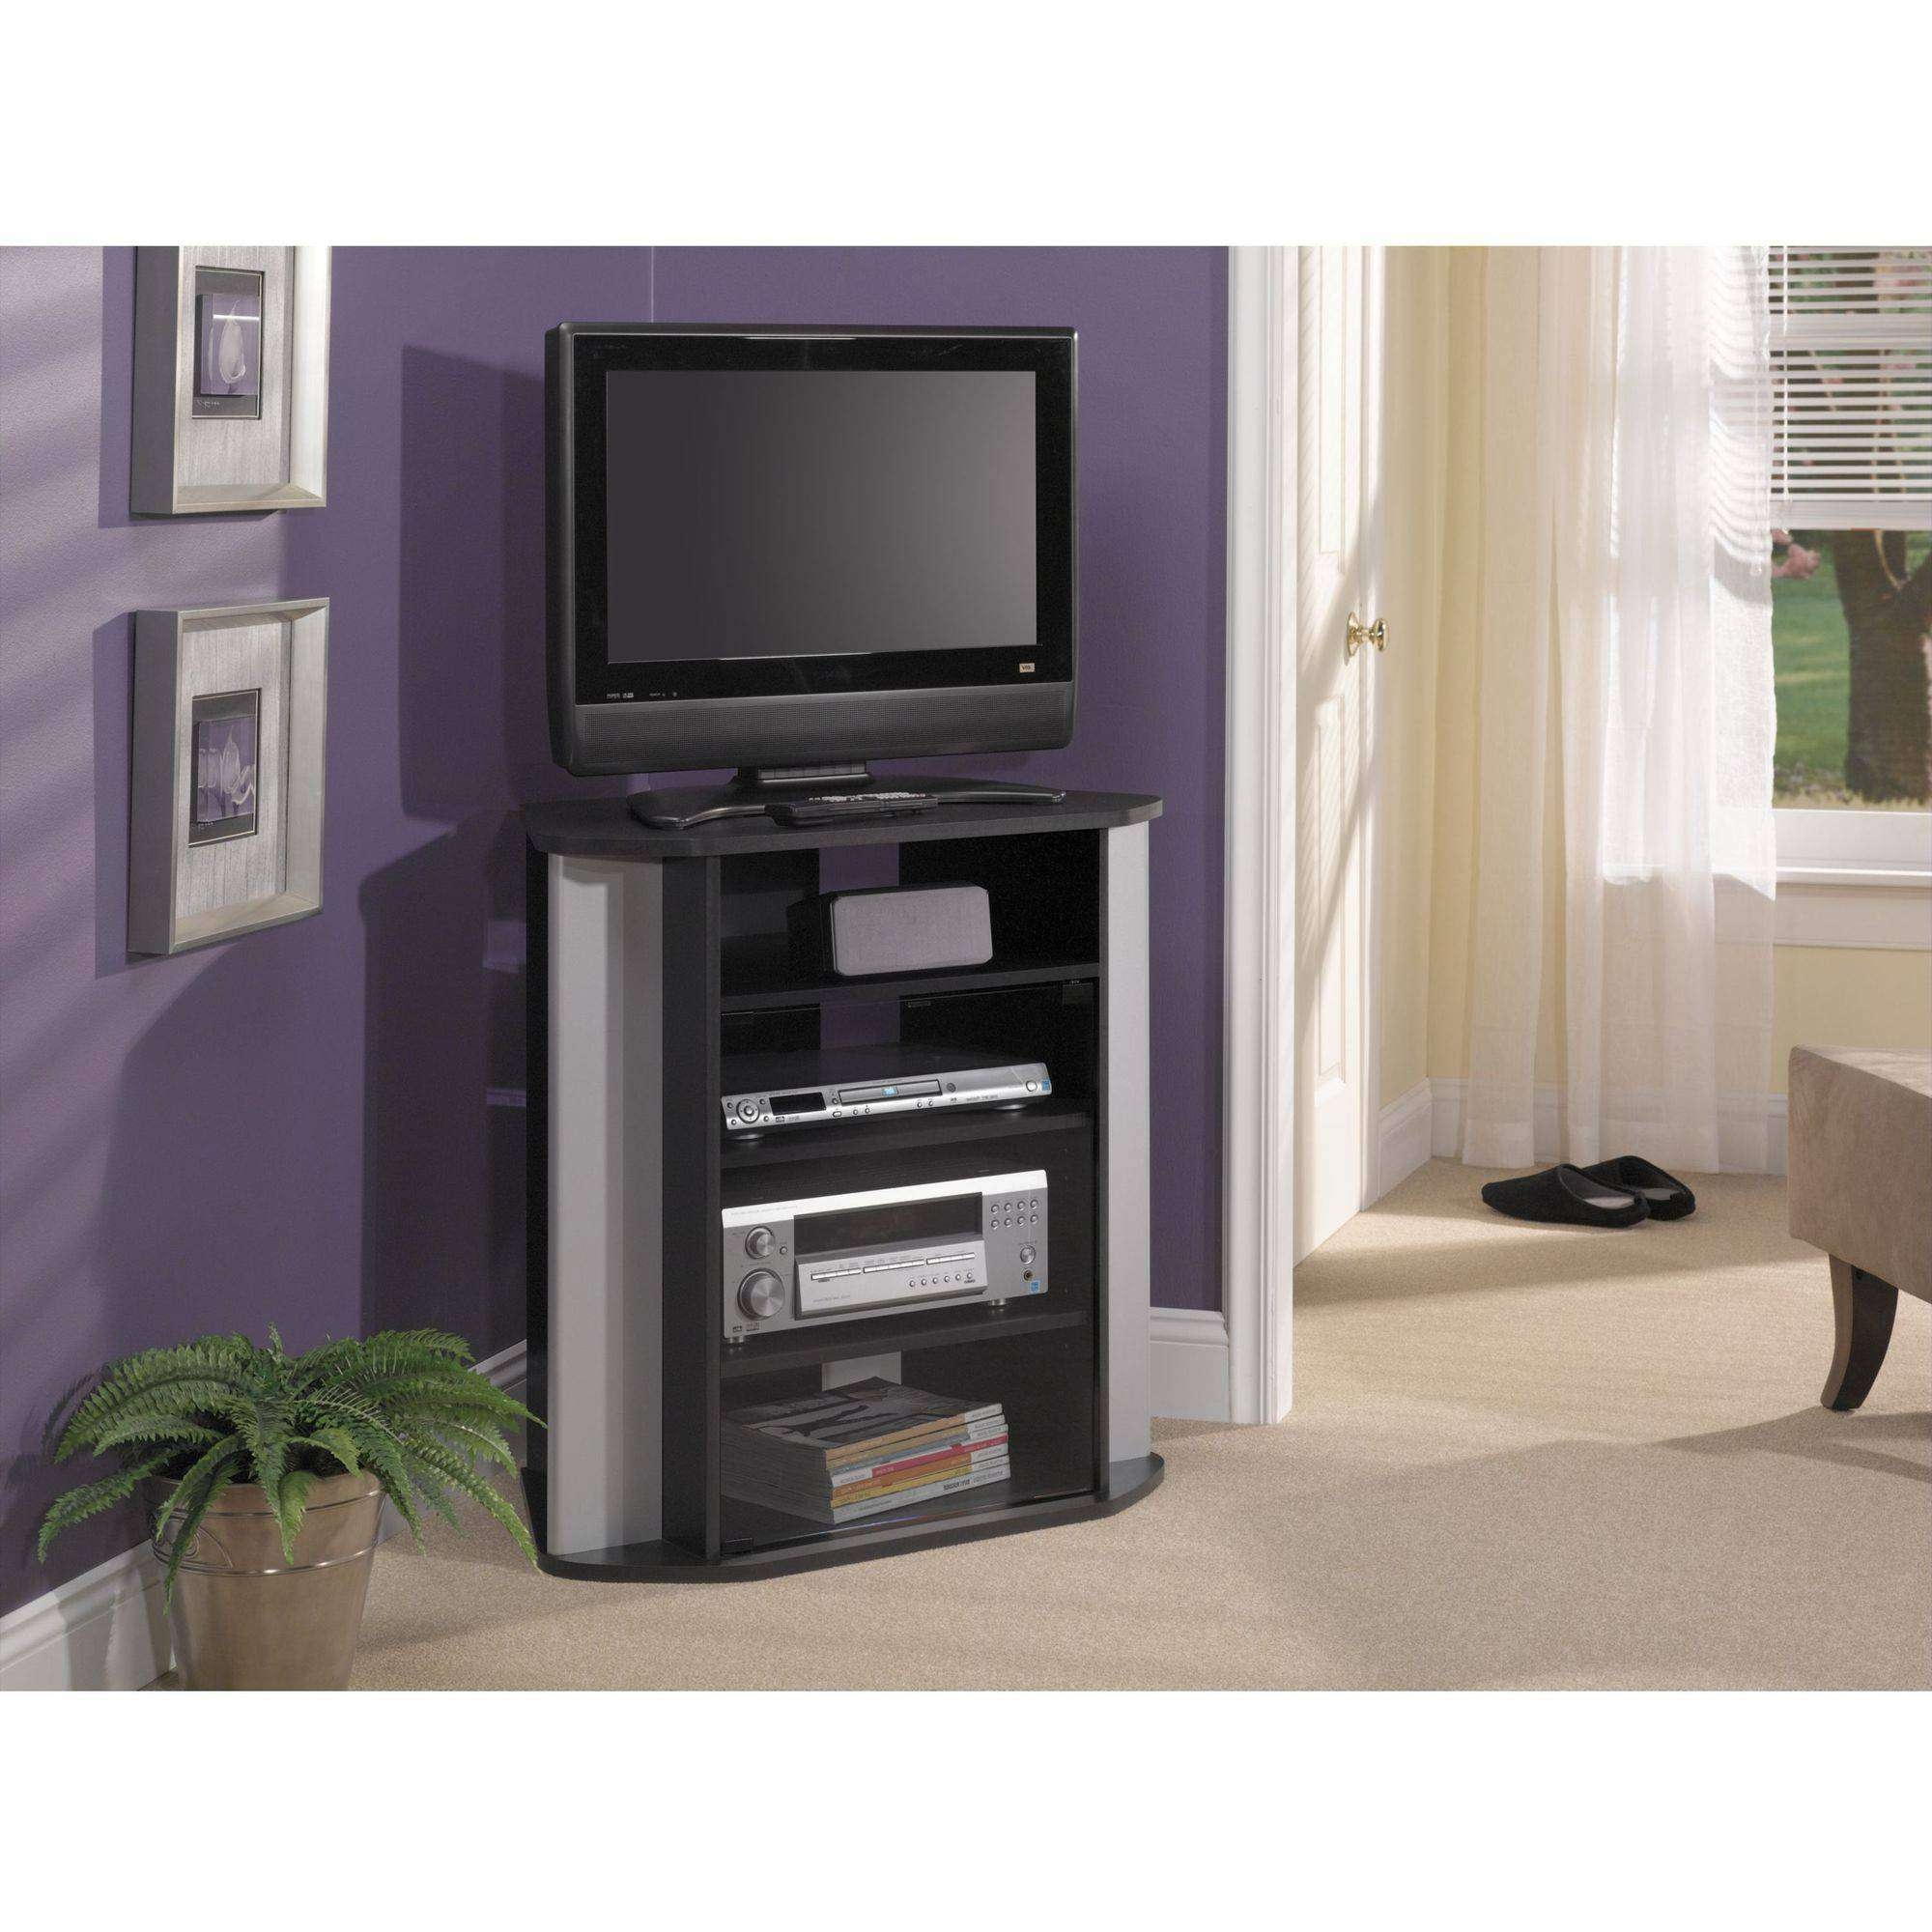 Corner Tv Stands – Walmart In Glass Corner Tv Stands For Flat Screen Tvs (View 2 of 15)